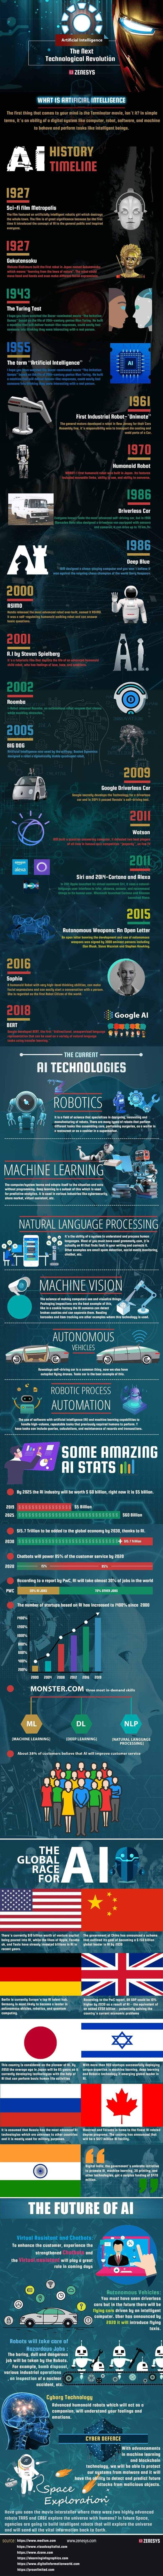 The next Revolution in Technology #infographic